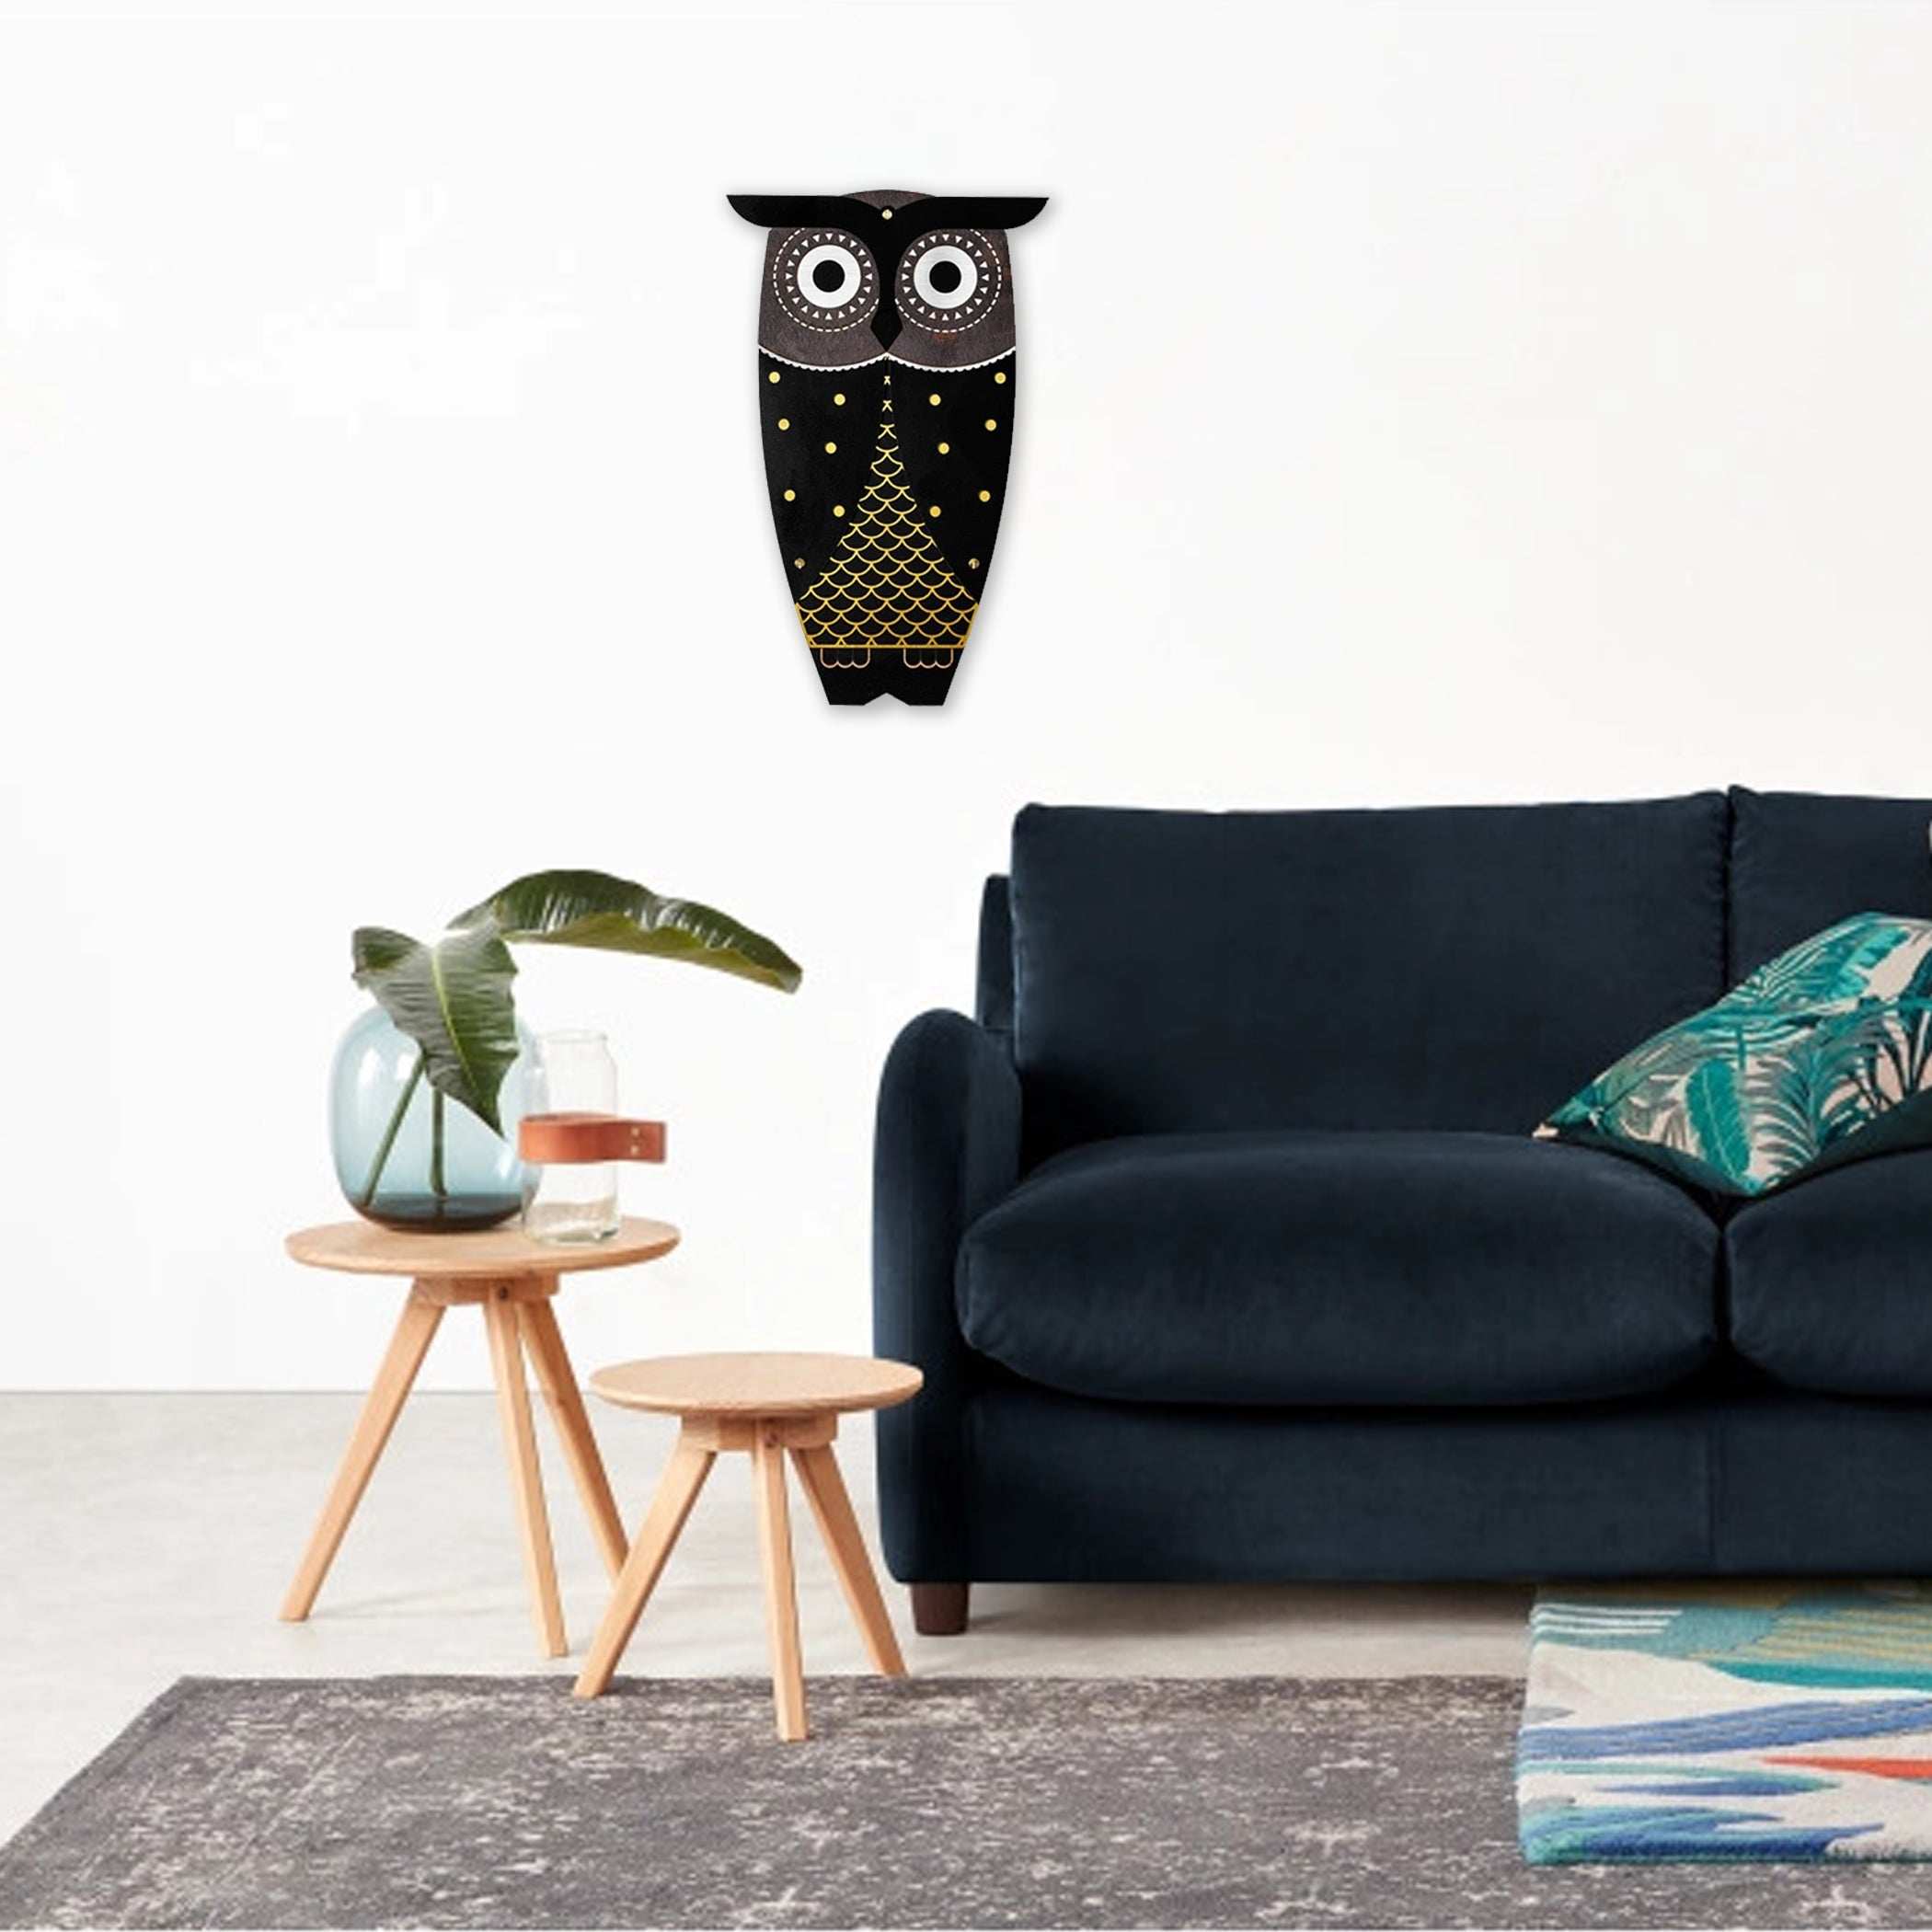 Owl Wall Decor with Wooden Wall Art